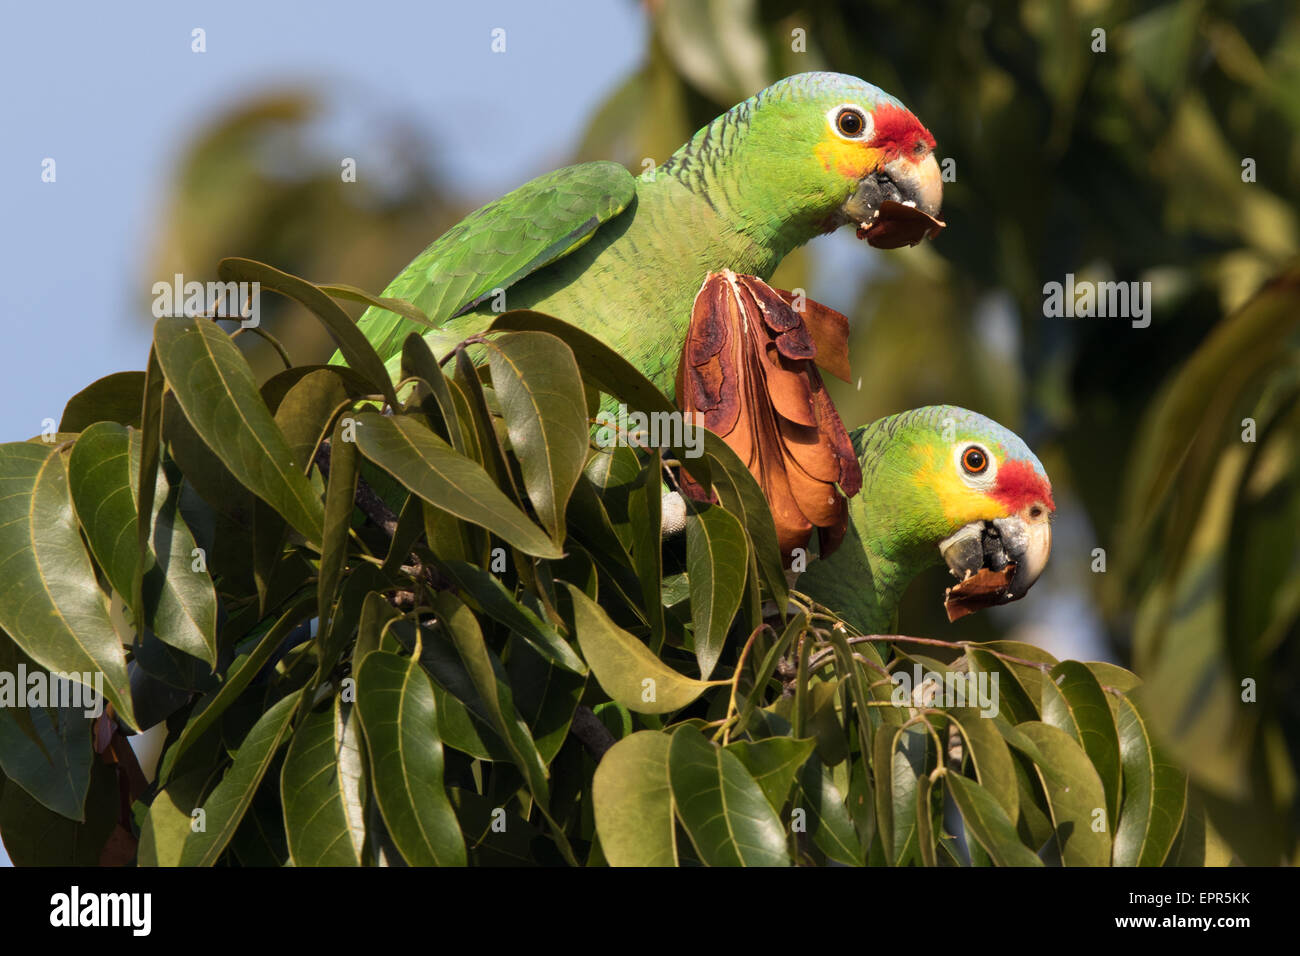 pair of Red-lored Parrot (Amazona autumnalis) feeding on seeds in a tree - Stock Image